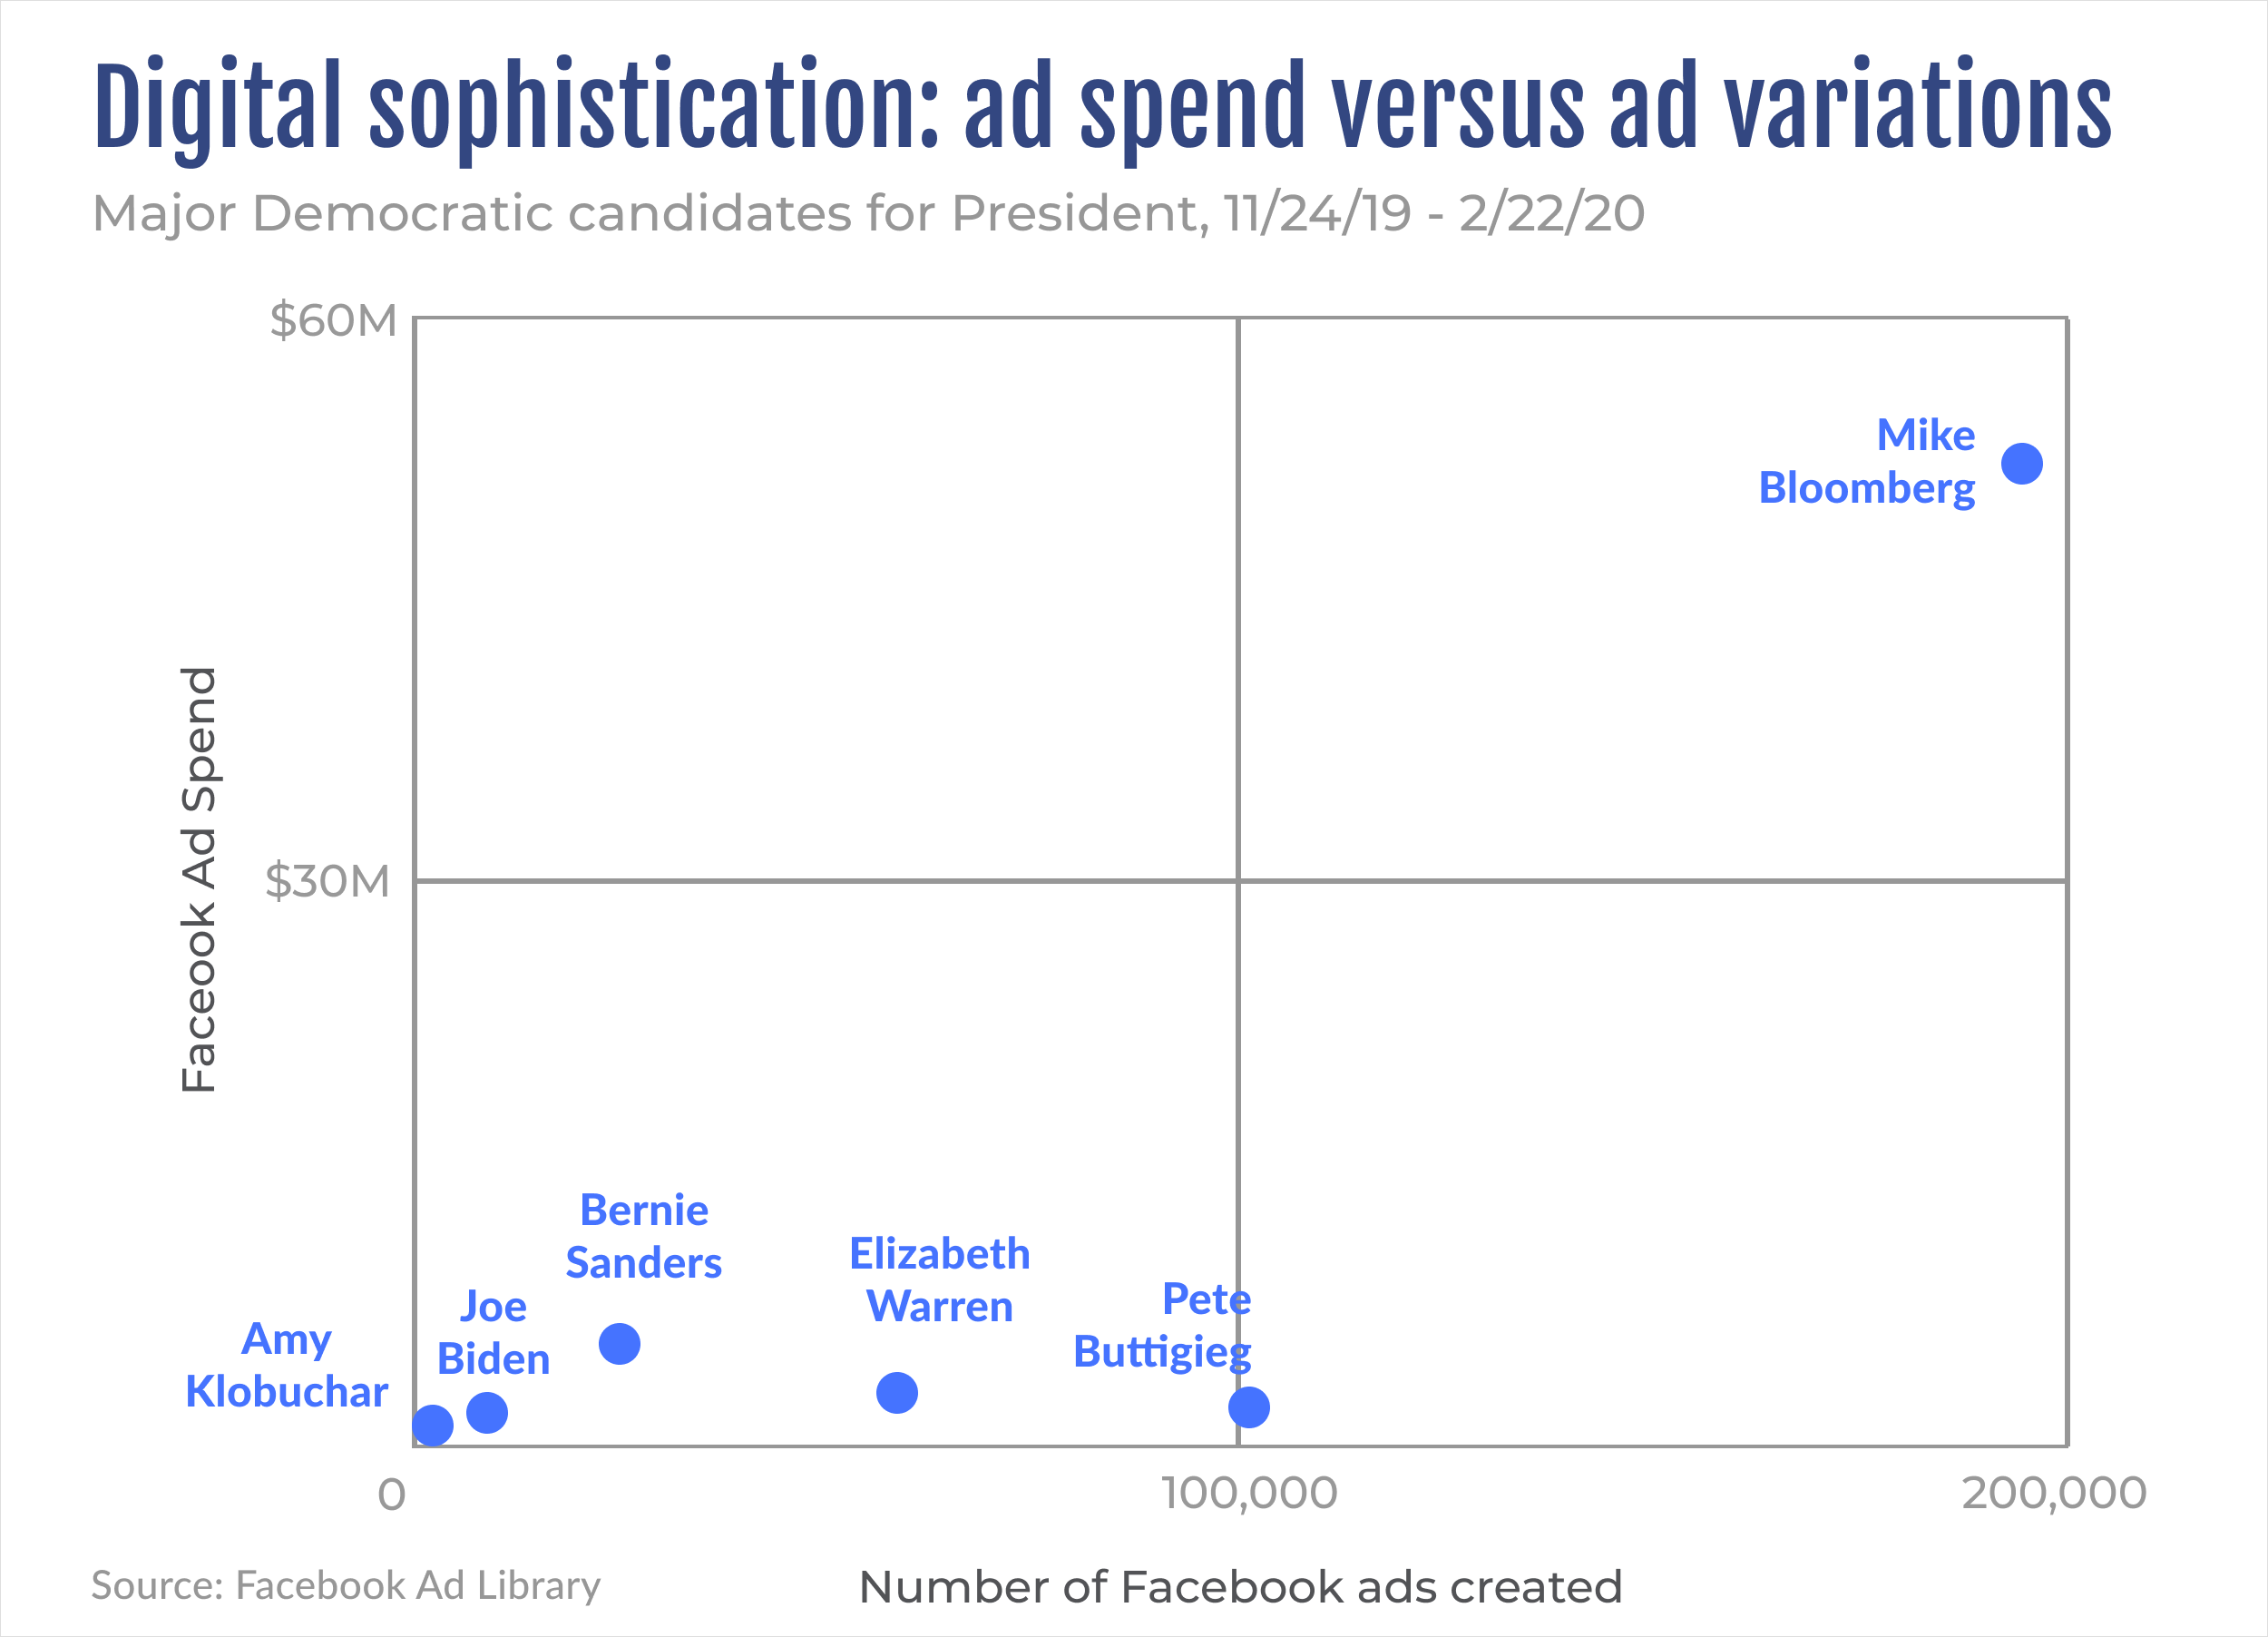 Ad spend versus ad variations - major Democratic candidates for President in 2020